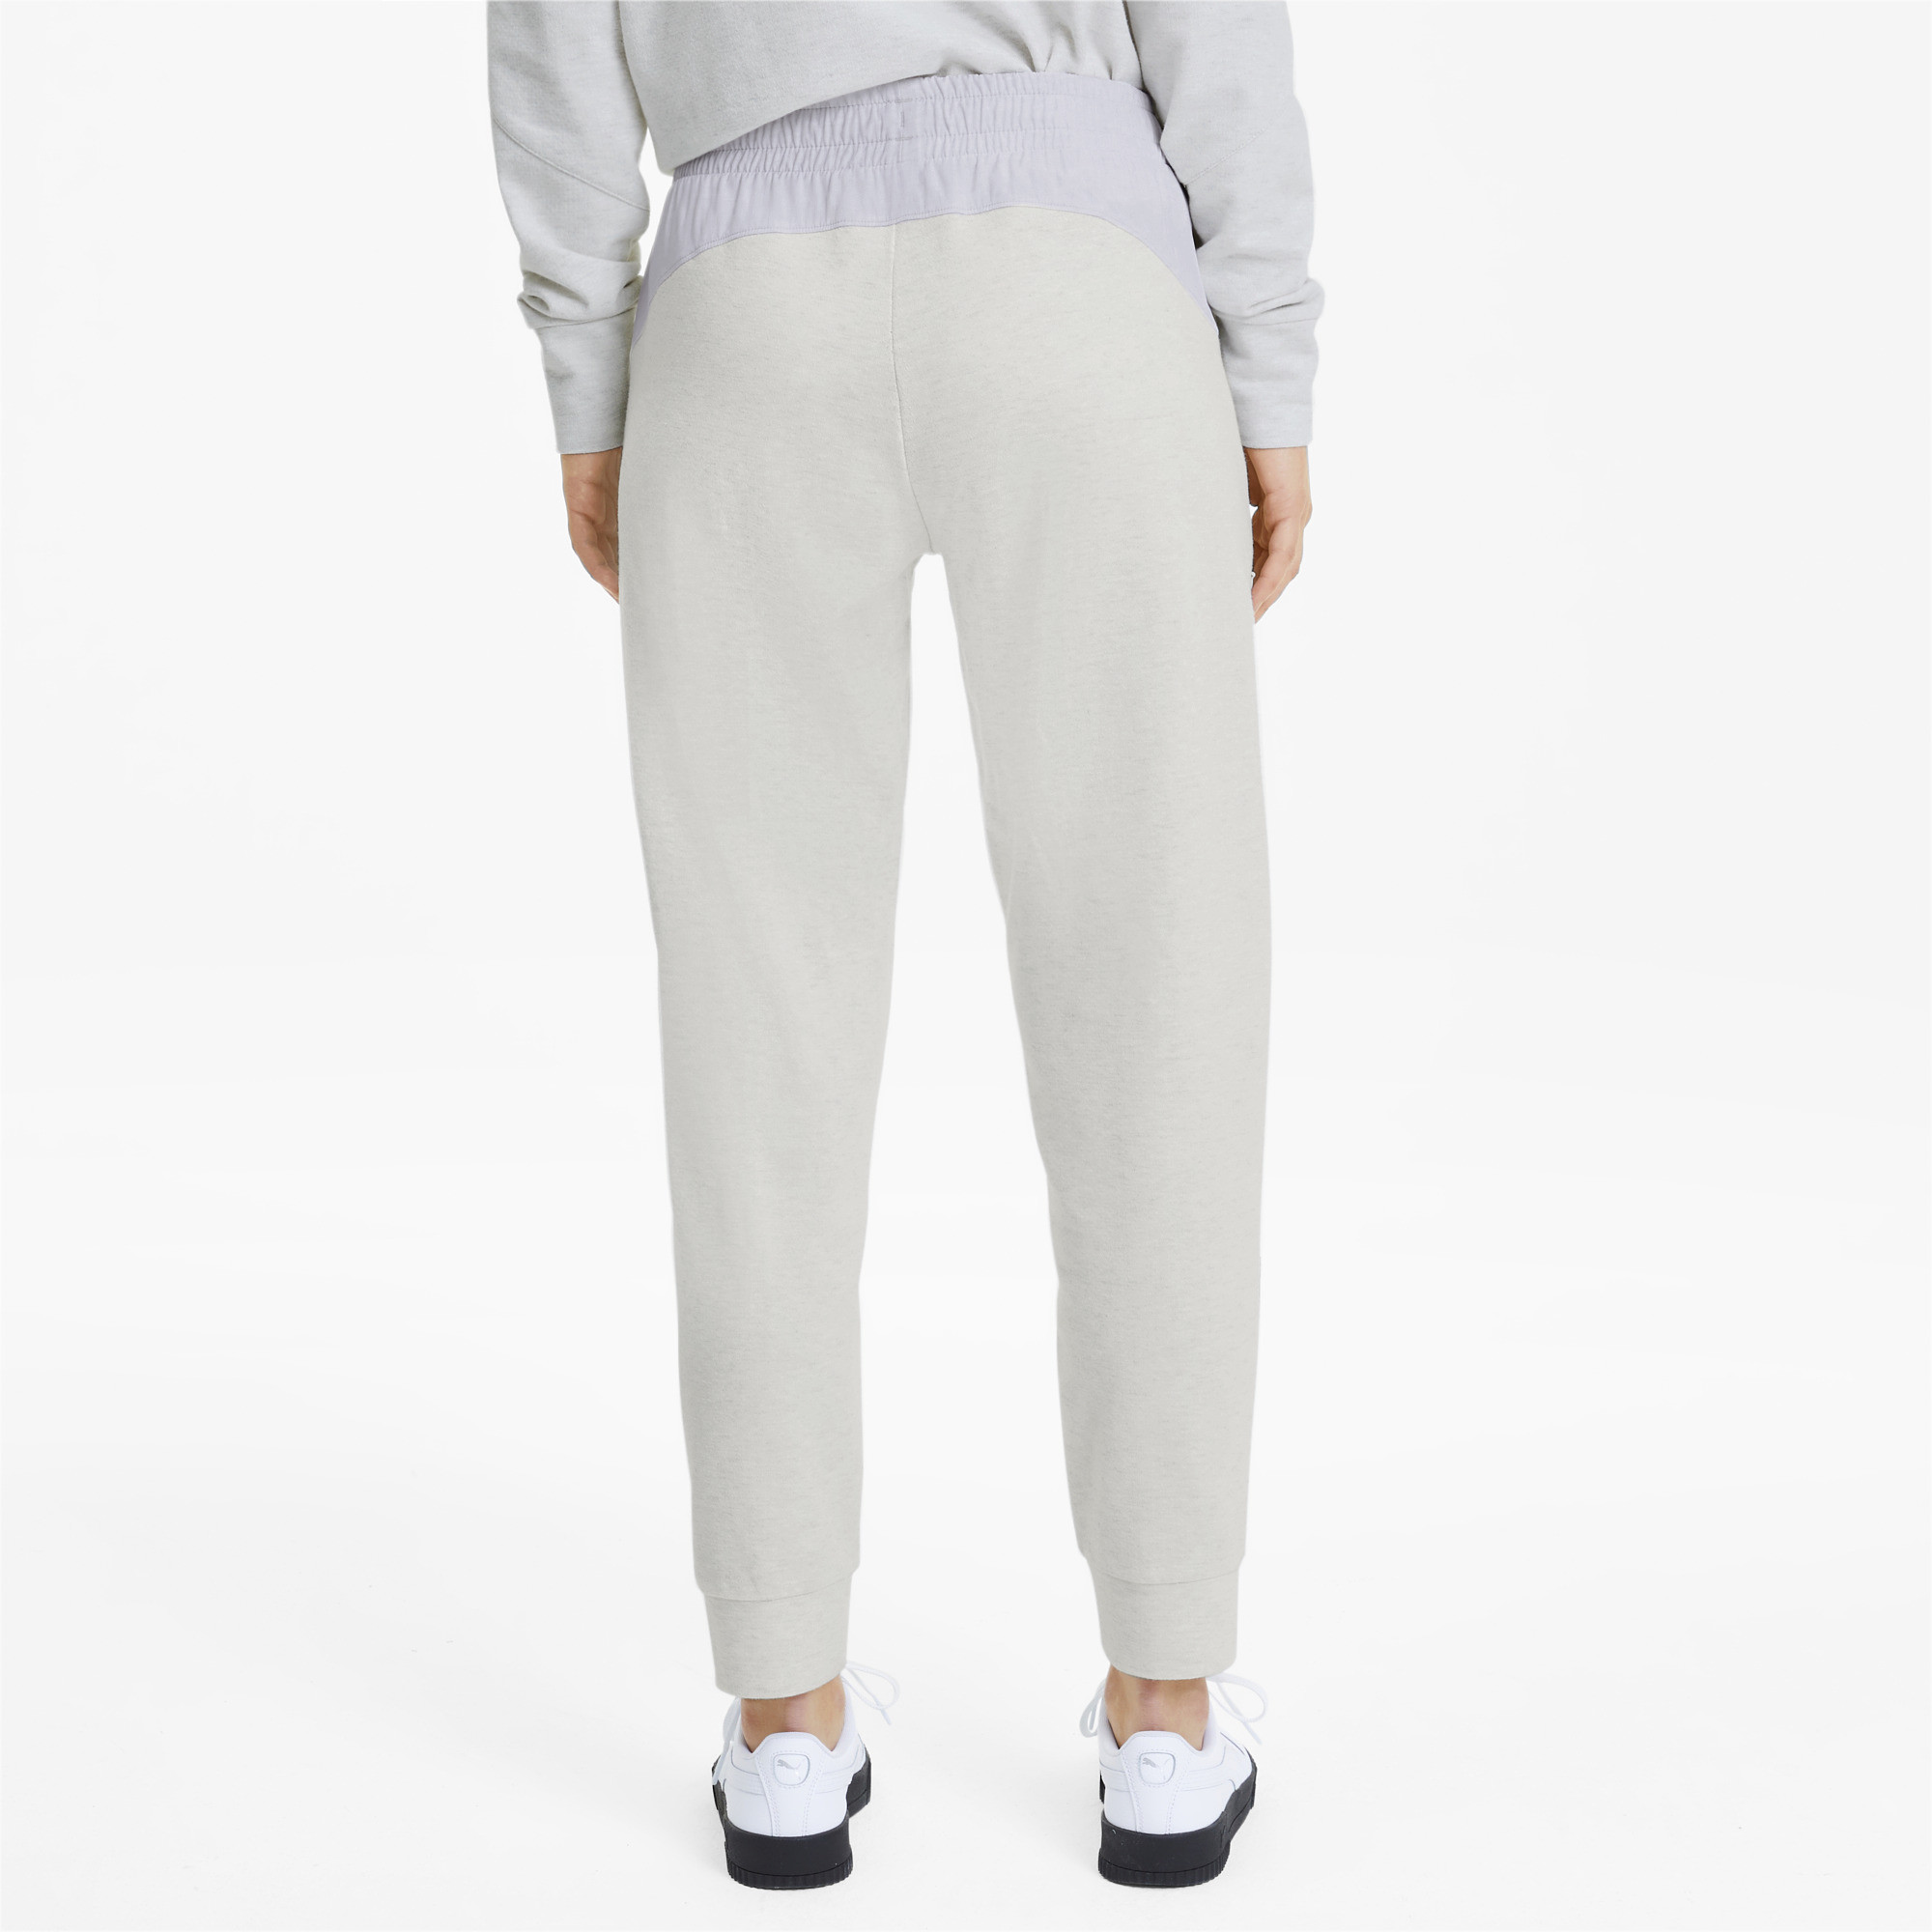 PUMA-Women-039-s-NU-TILITY-Sweatpants thumbnail 5